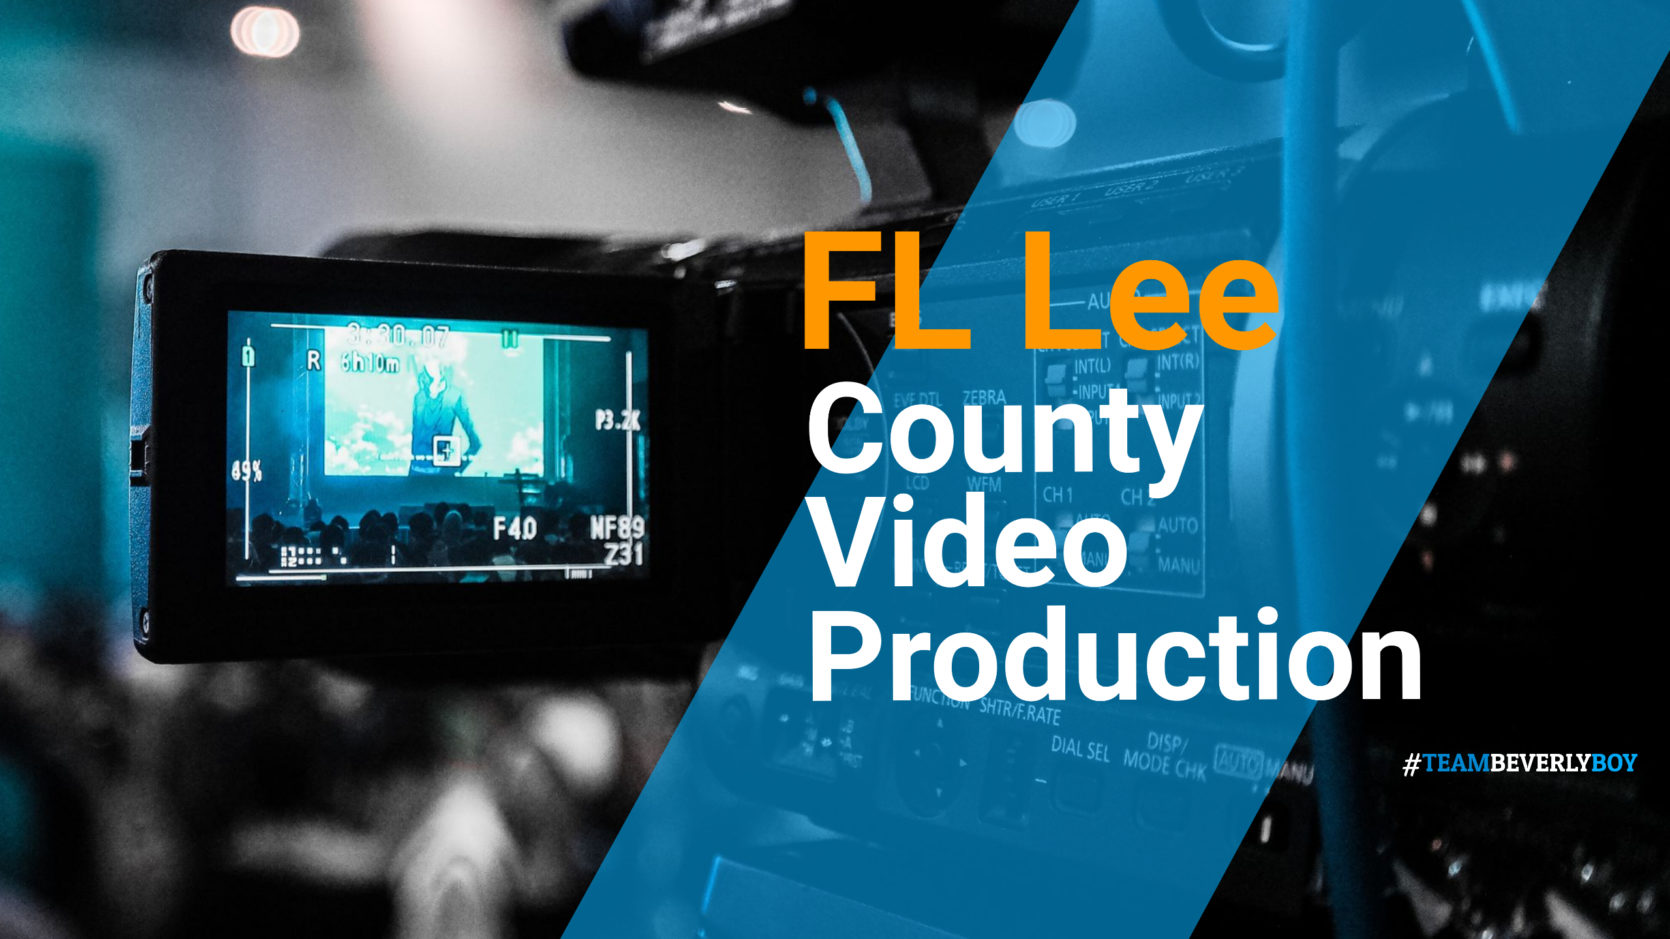 Lee County FL Video Production